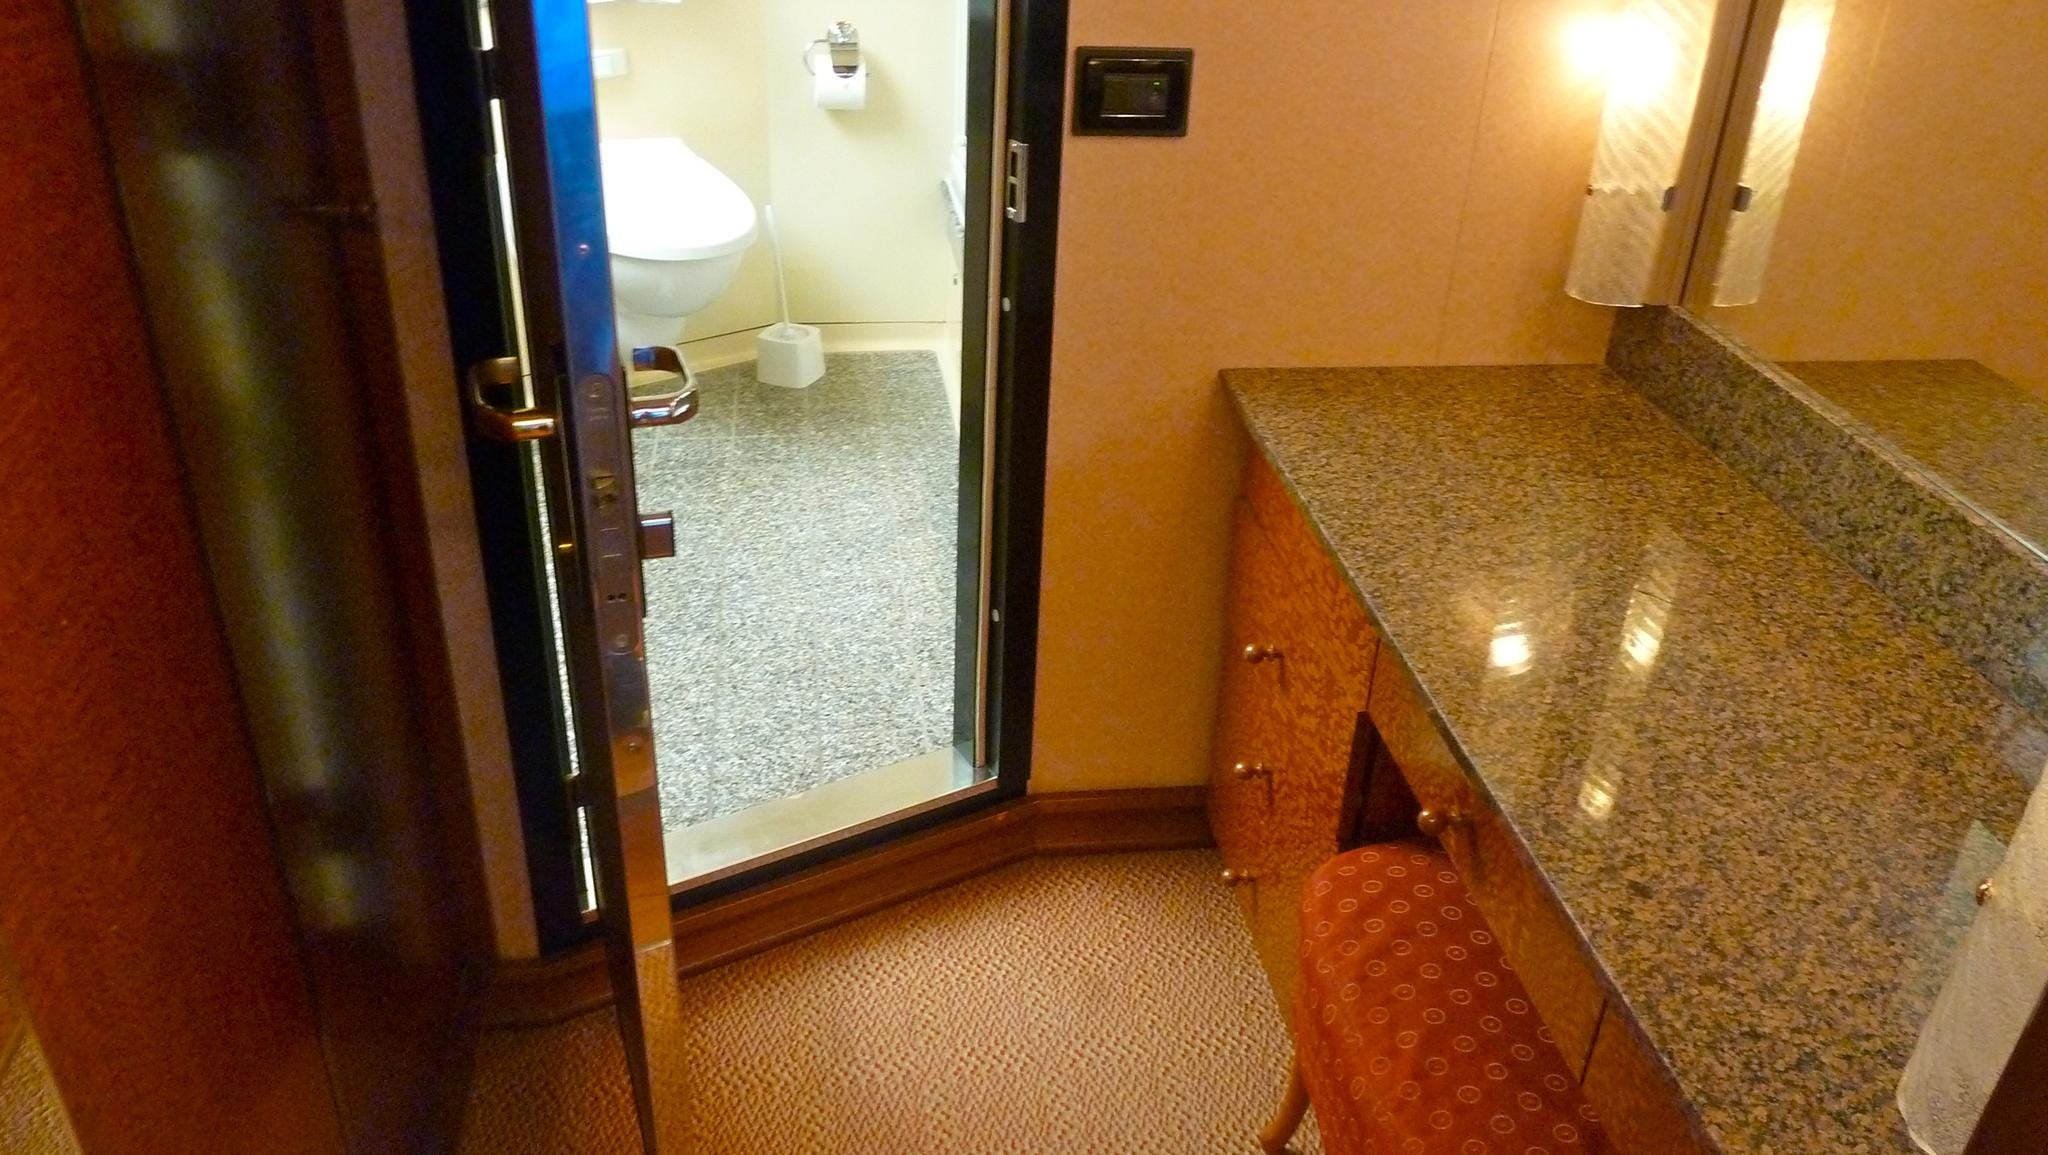 Ocean Suites have dressing areas in their walk-in closets.